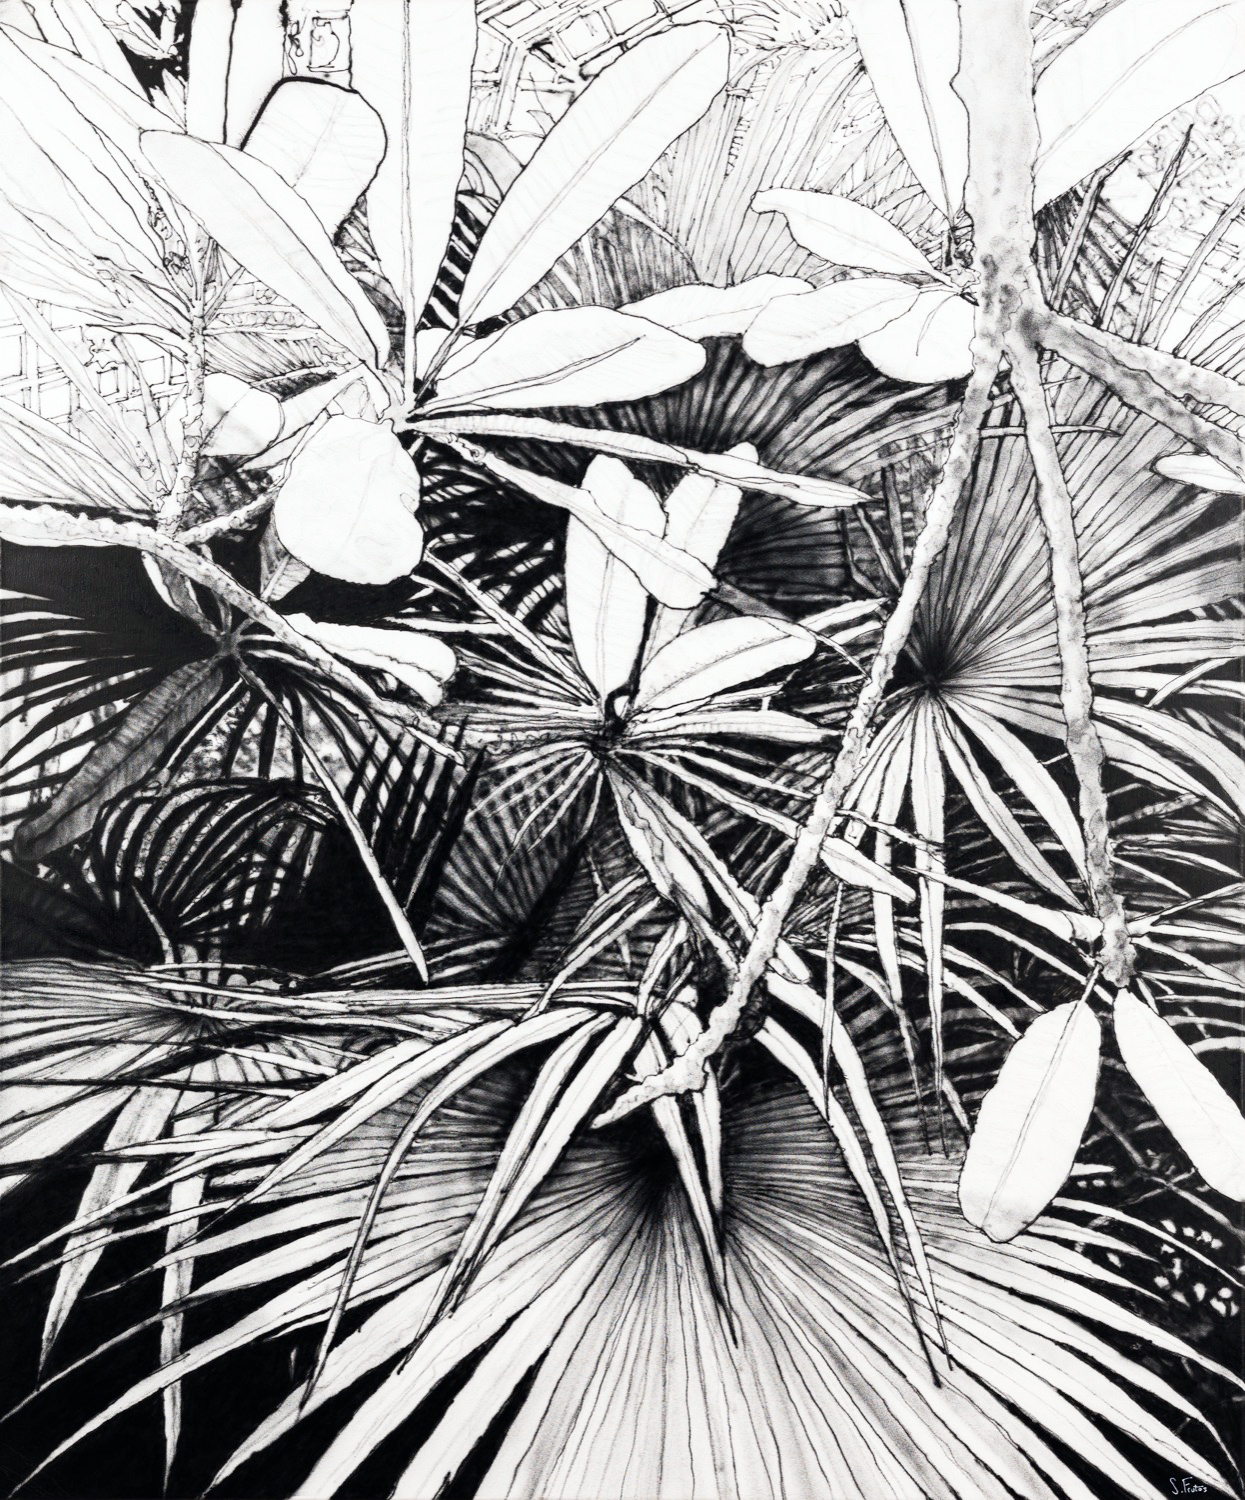 Palme II. Ink on canvas, 100 x 120 cm, 2020